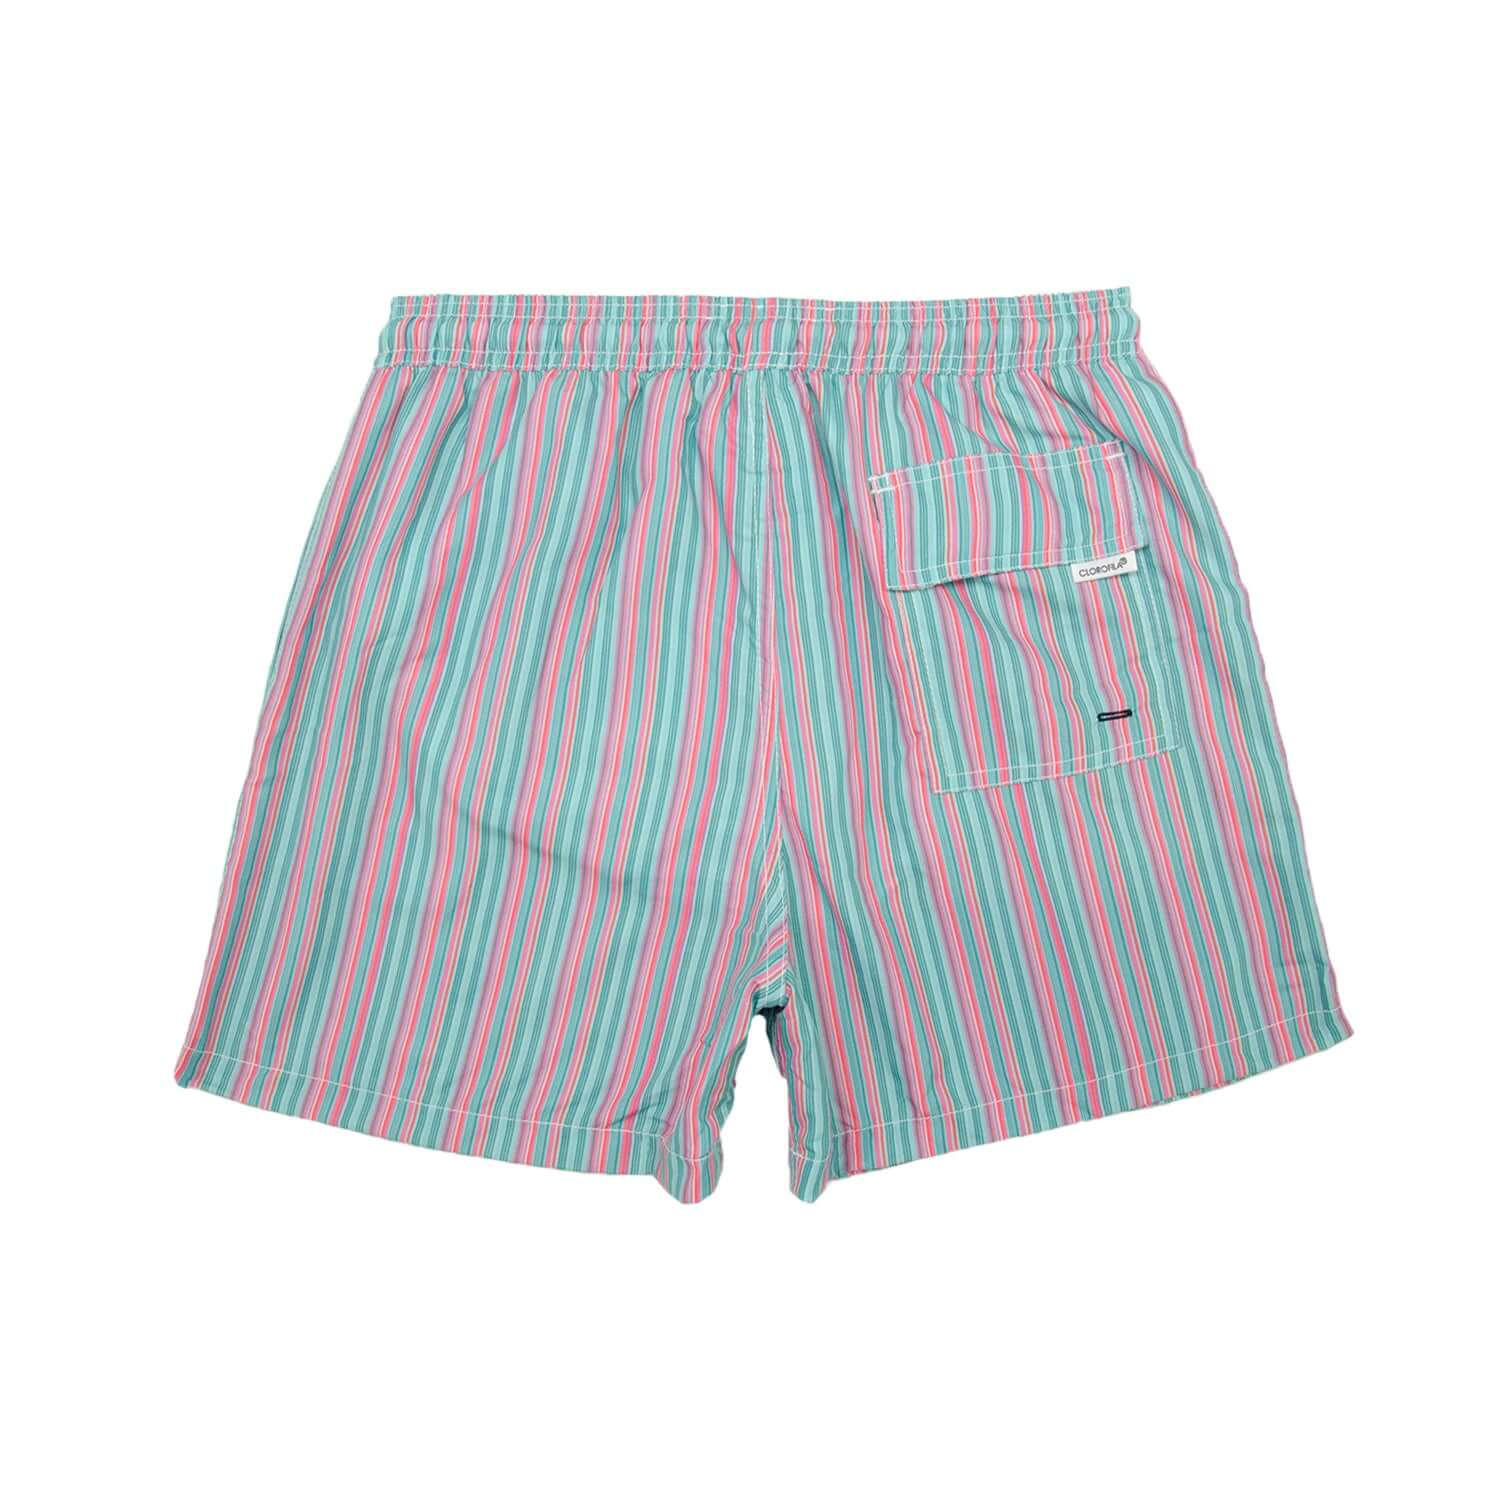 STRIPES JADE PINK - Clorofila Sea Wear